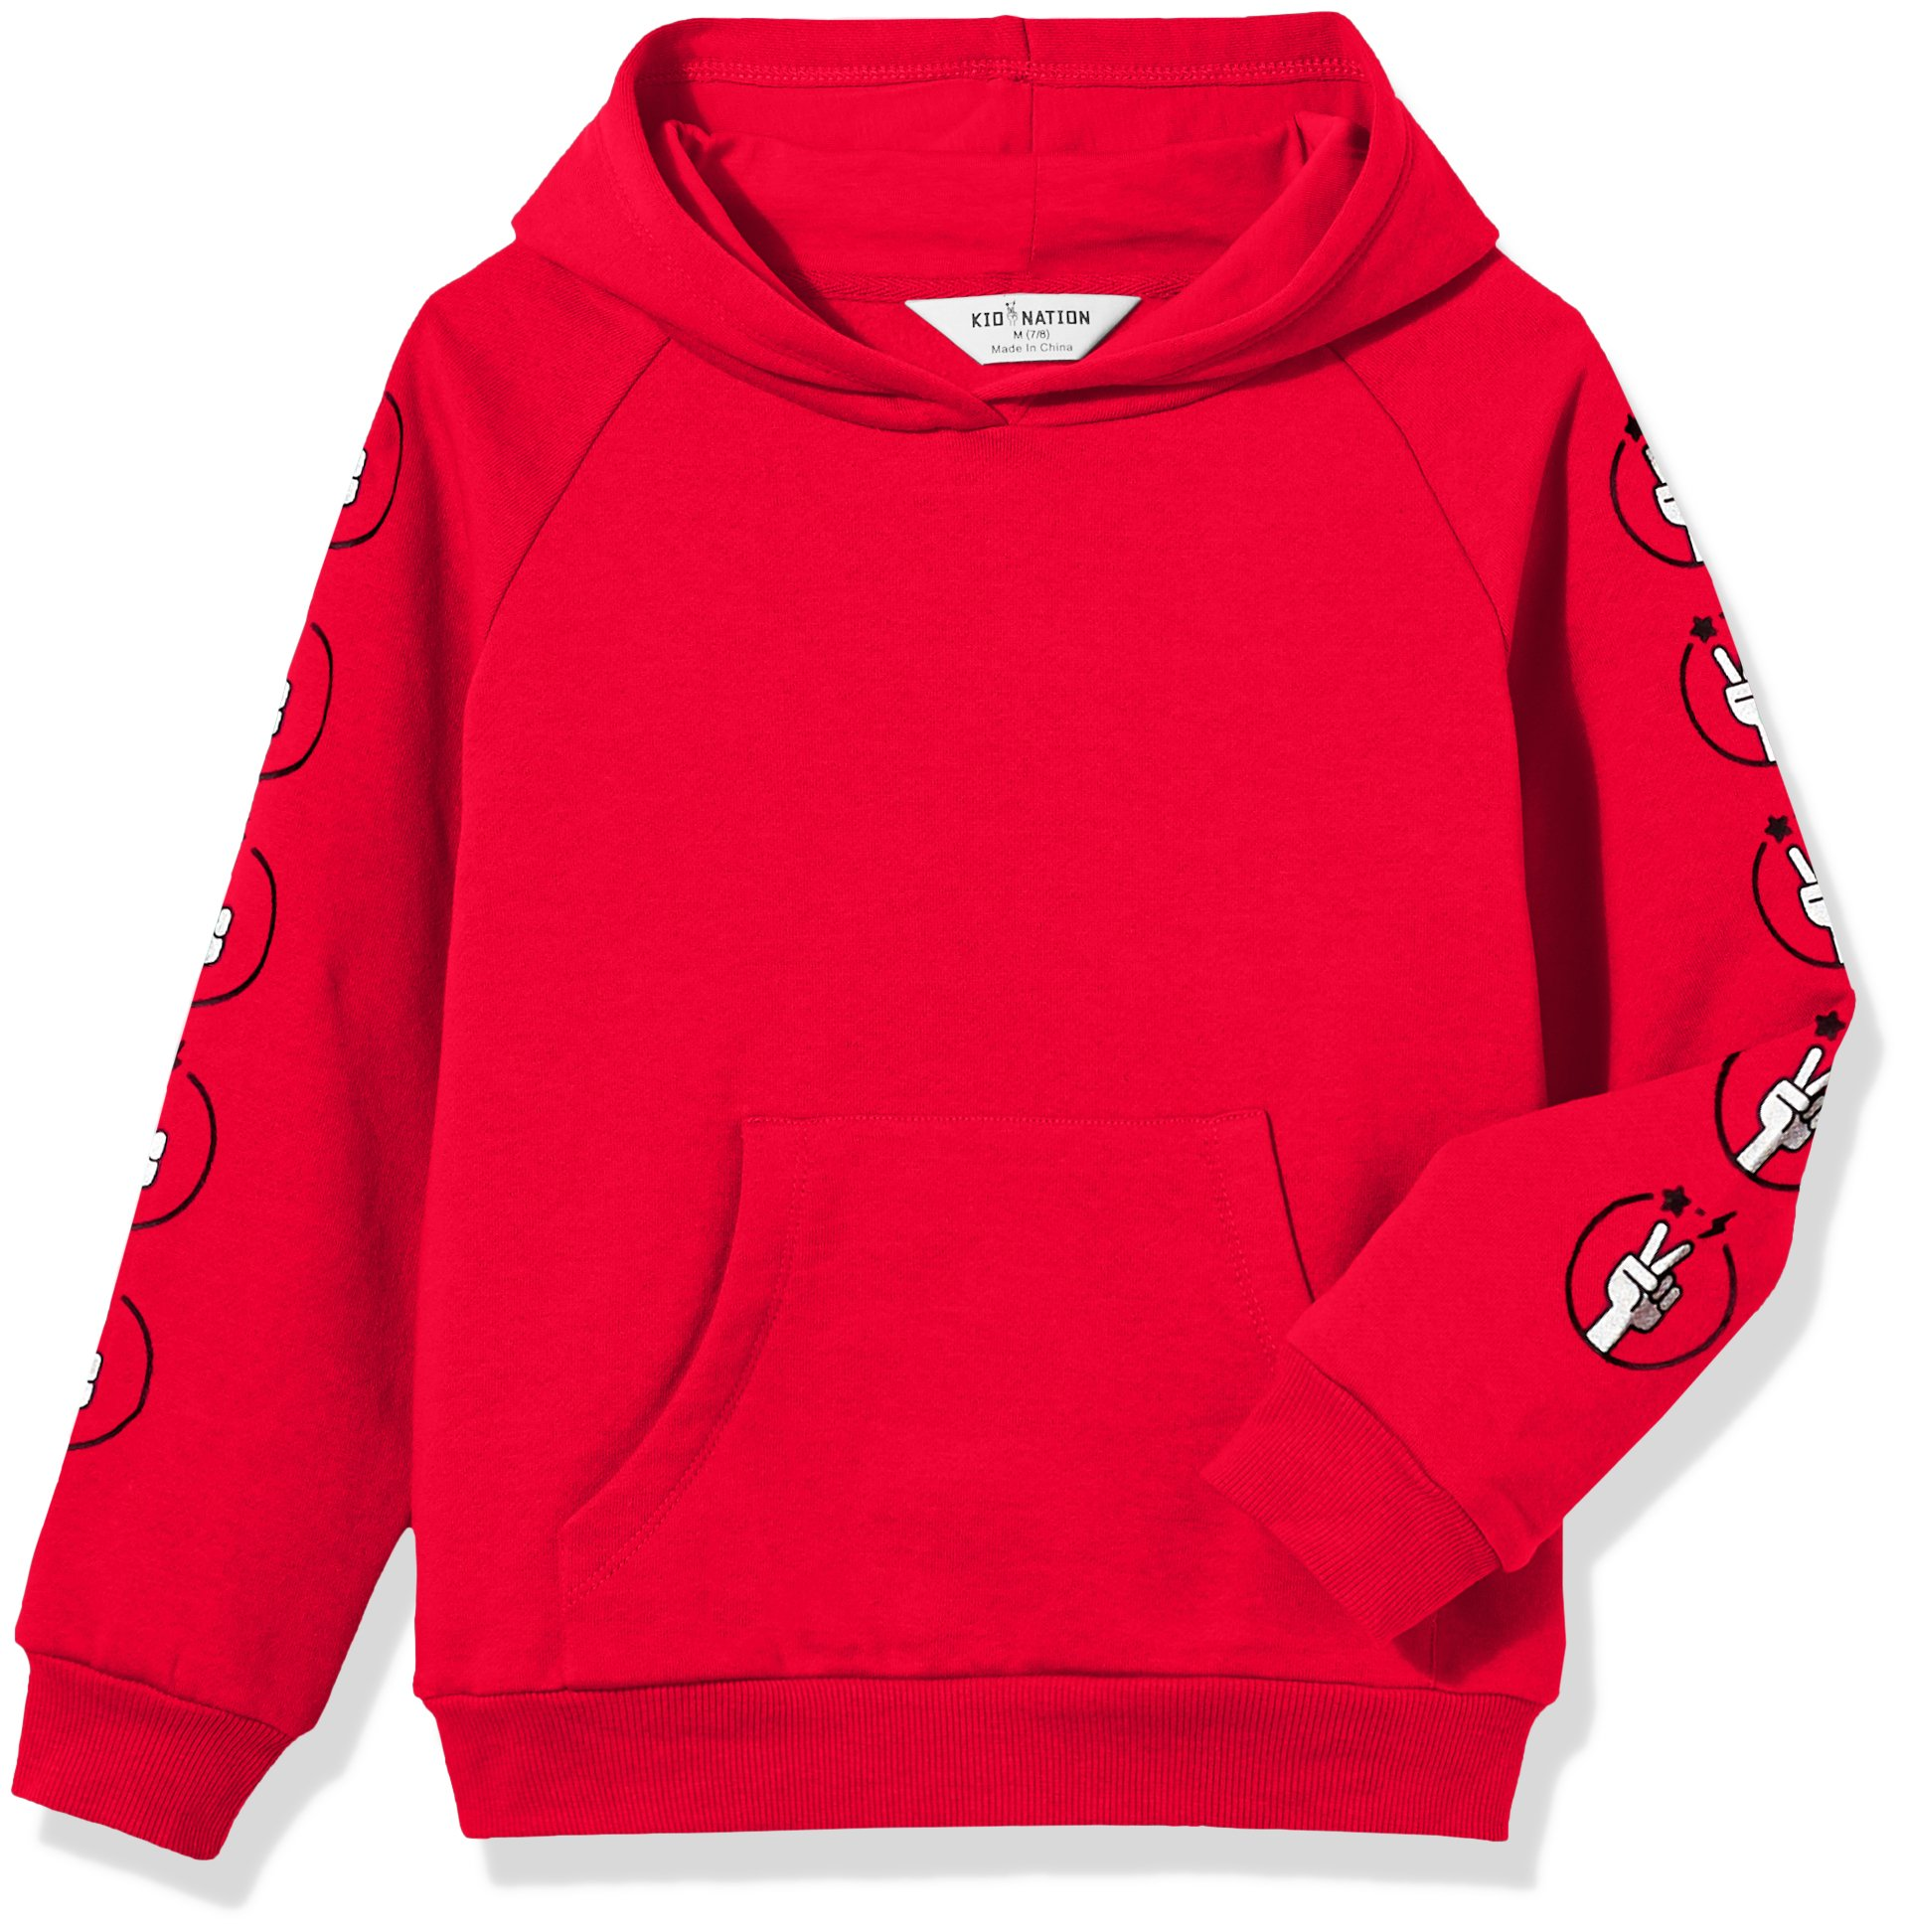 Kid Nation Kids' Solid Fleece Hooded Pullover Sweatshirt for Boys Or Girls M Red